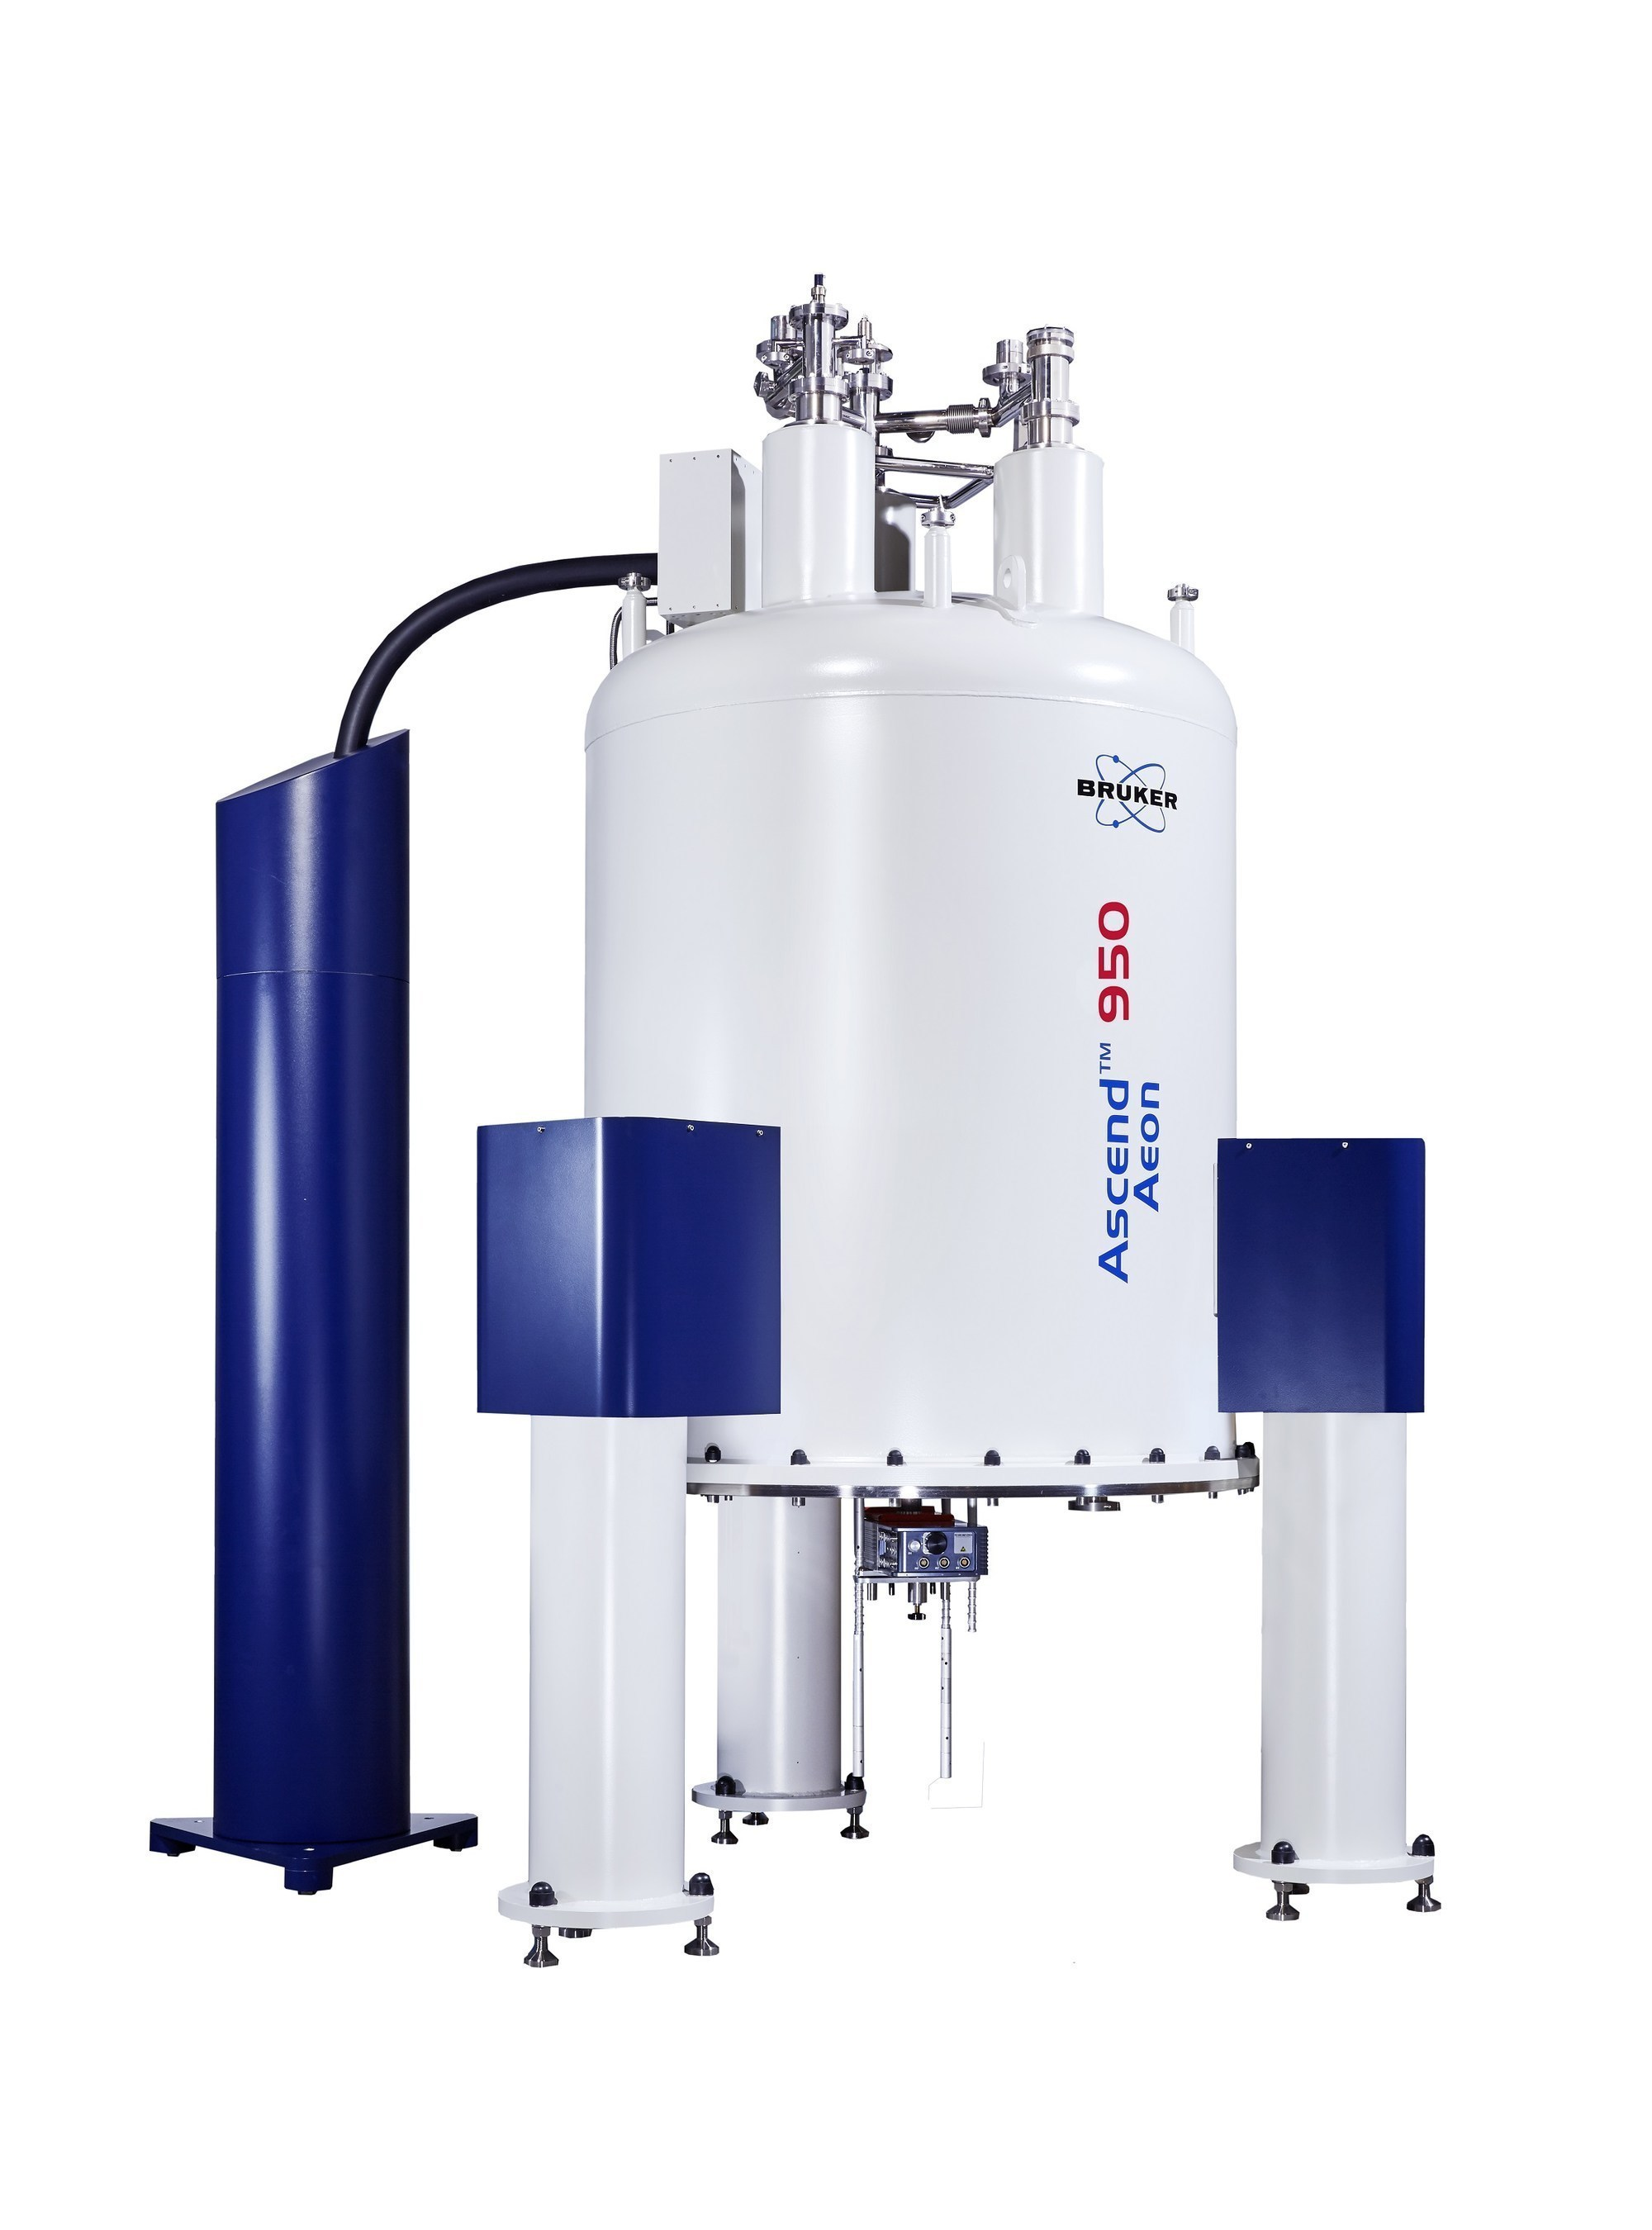 Bruker Introduces Cutting Edge Nmr Magnet And Probe Technology At